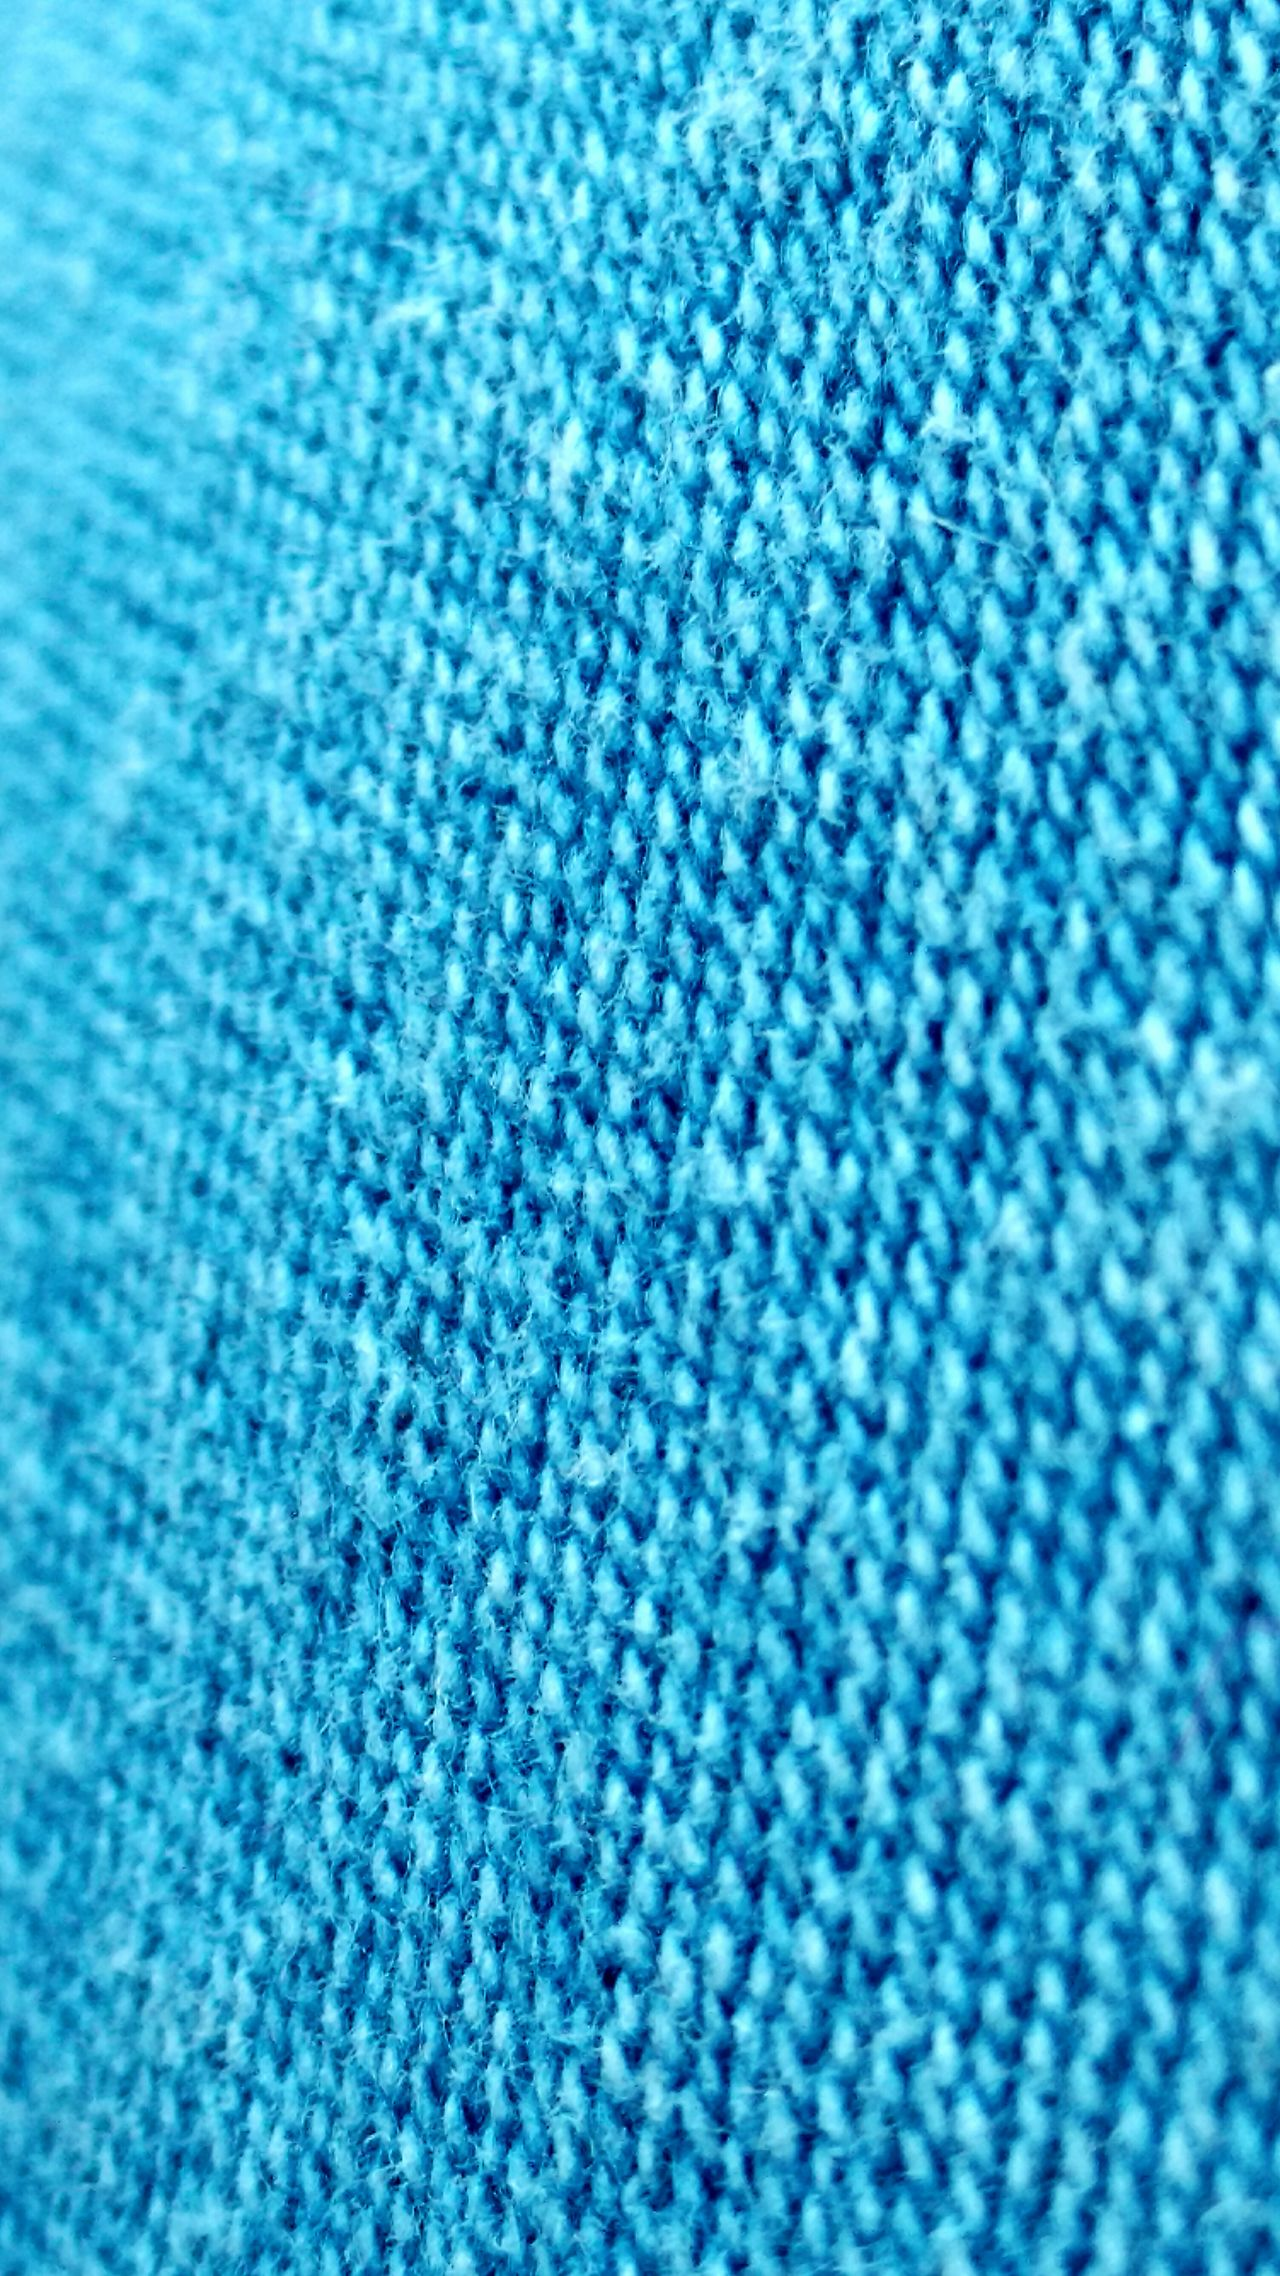 Denims Jeans Macro_collection Macro Photography Nice Evening Beaty Sunset :)